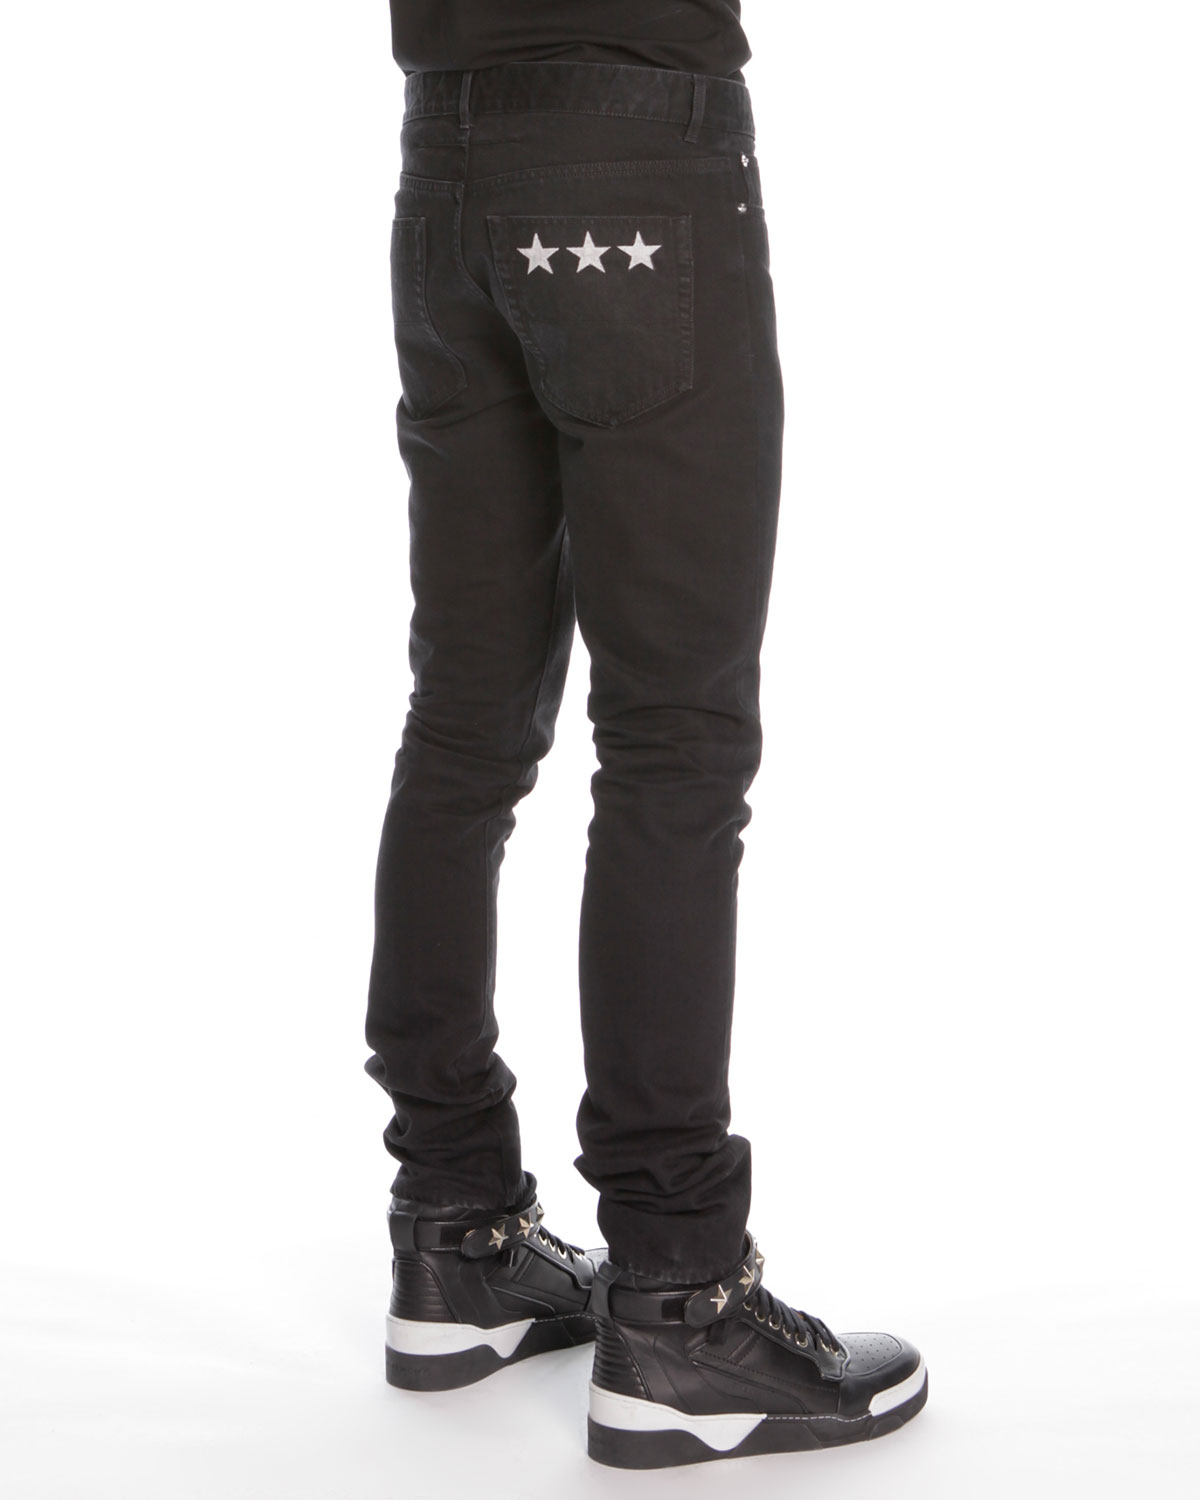 Faded Black Jeans Mens